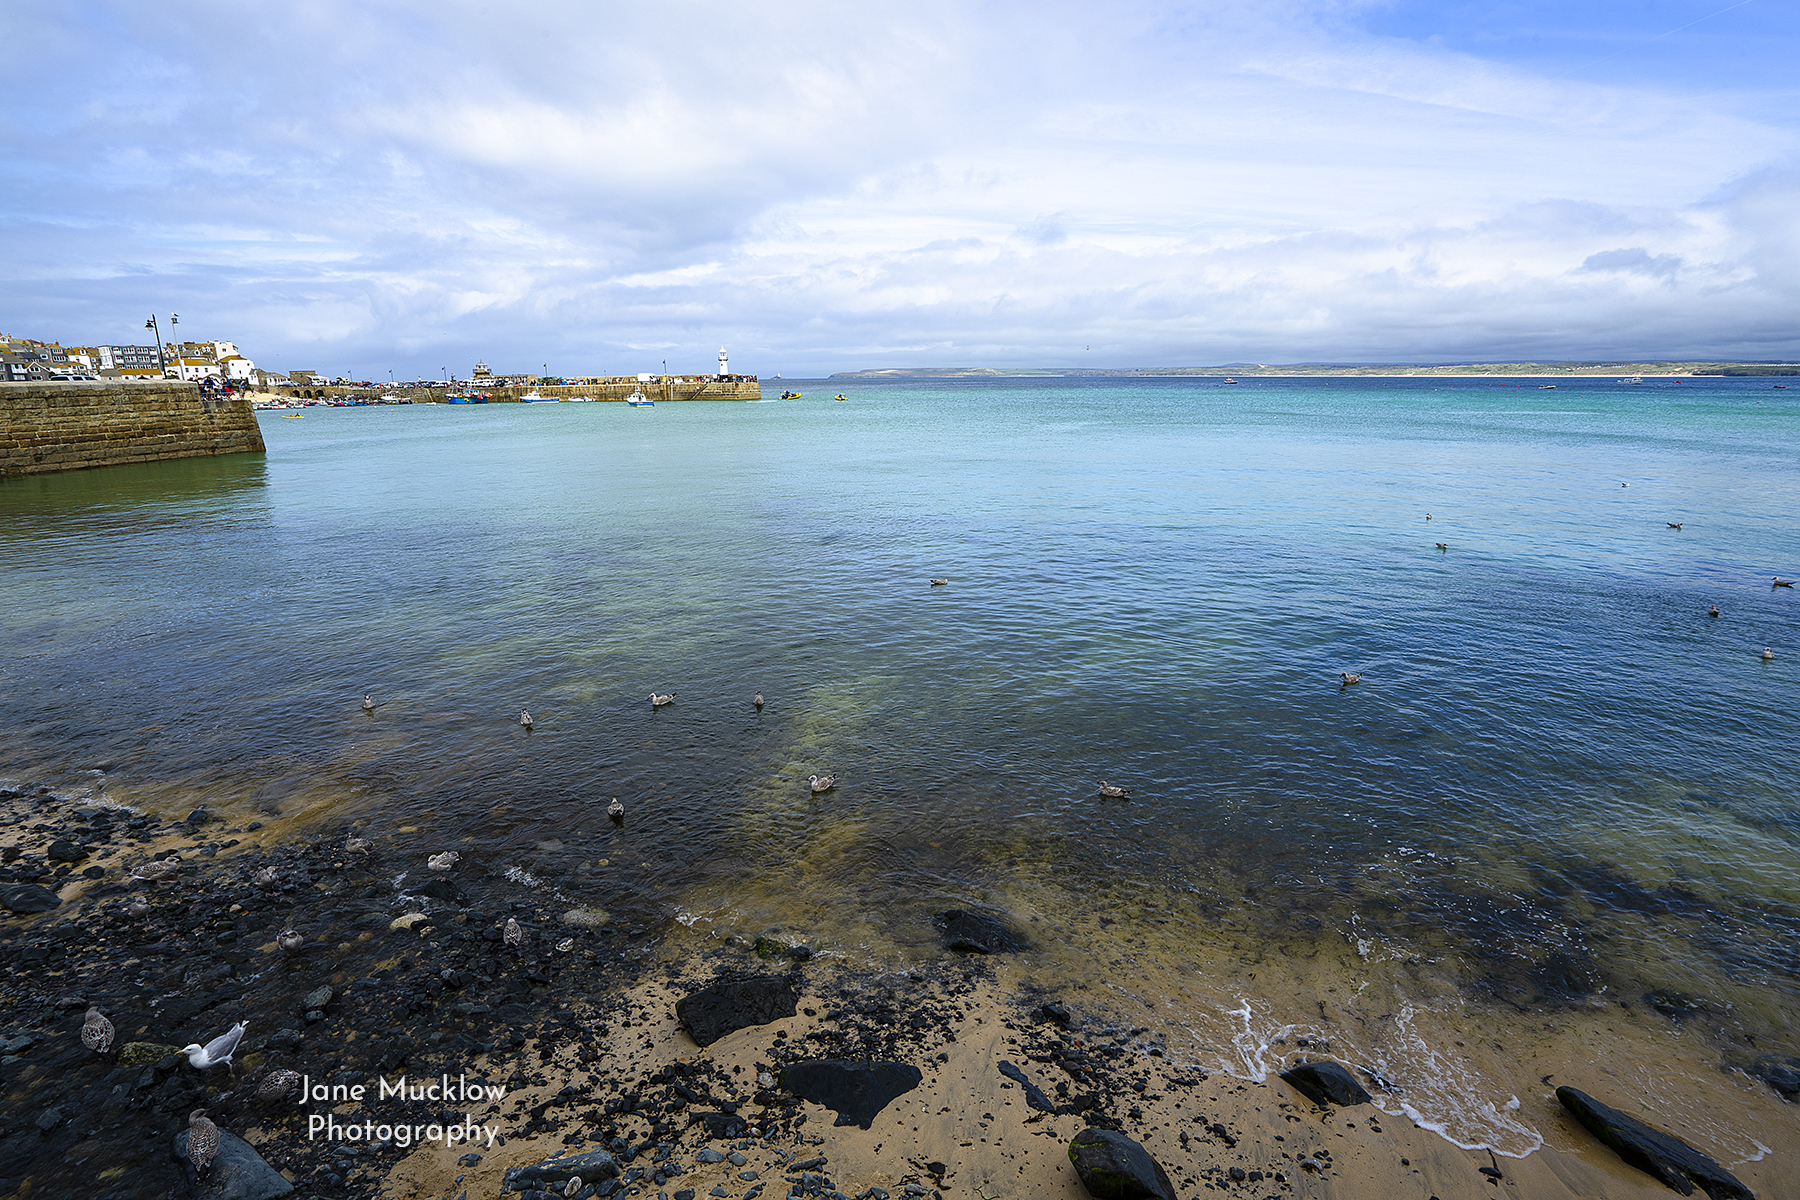 Photo by Jane Mucklow of the bay of St. Ives, looking up towards Godrevy and the north Cornwall coast